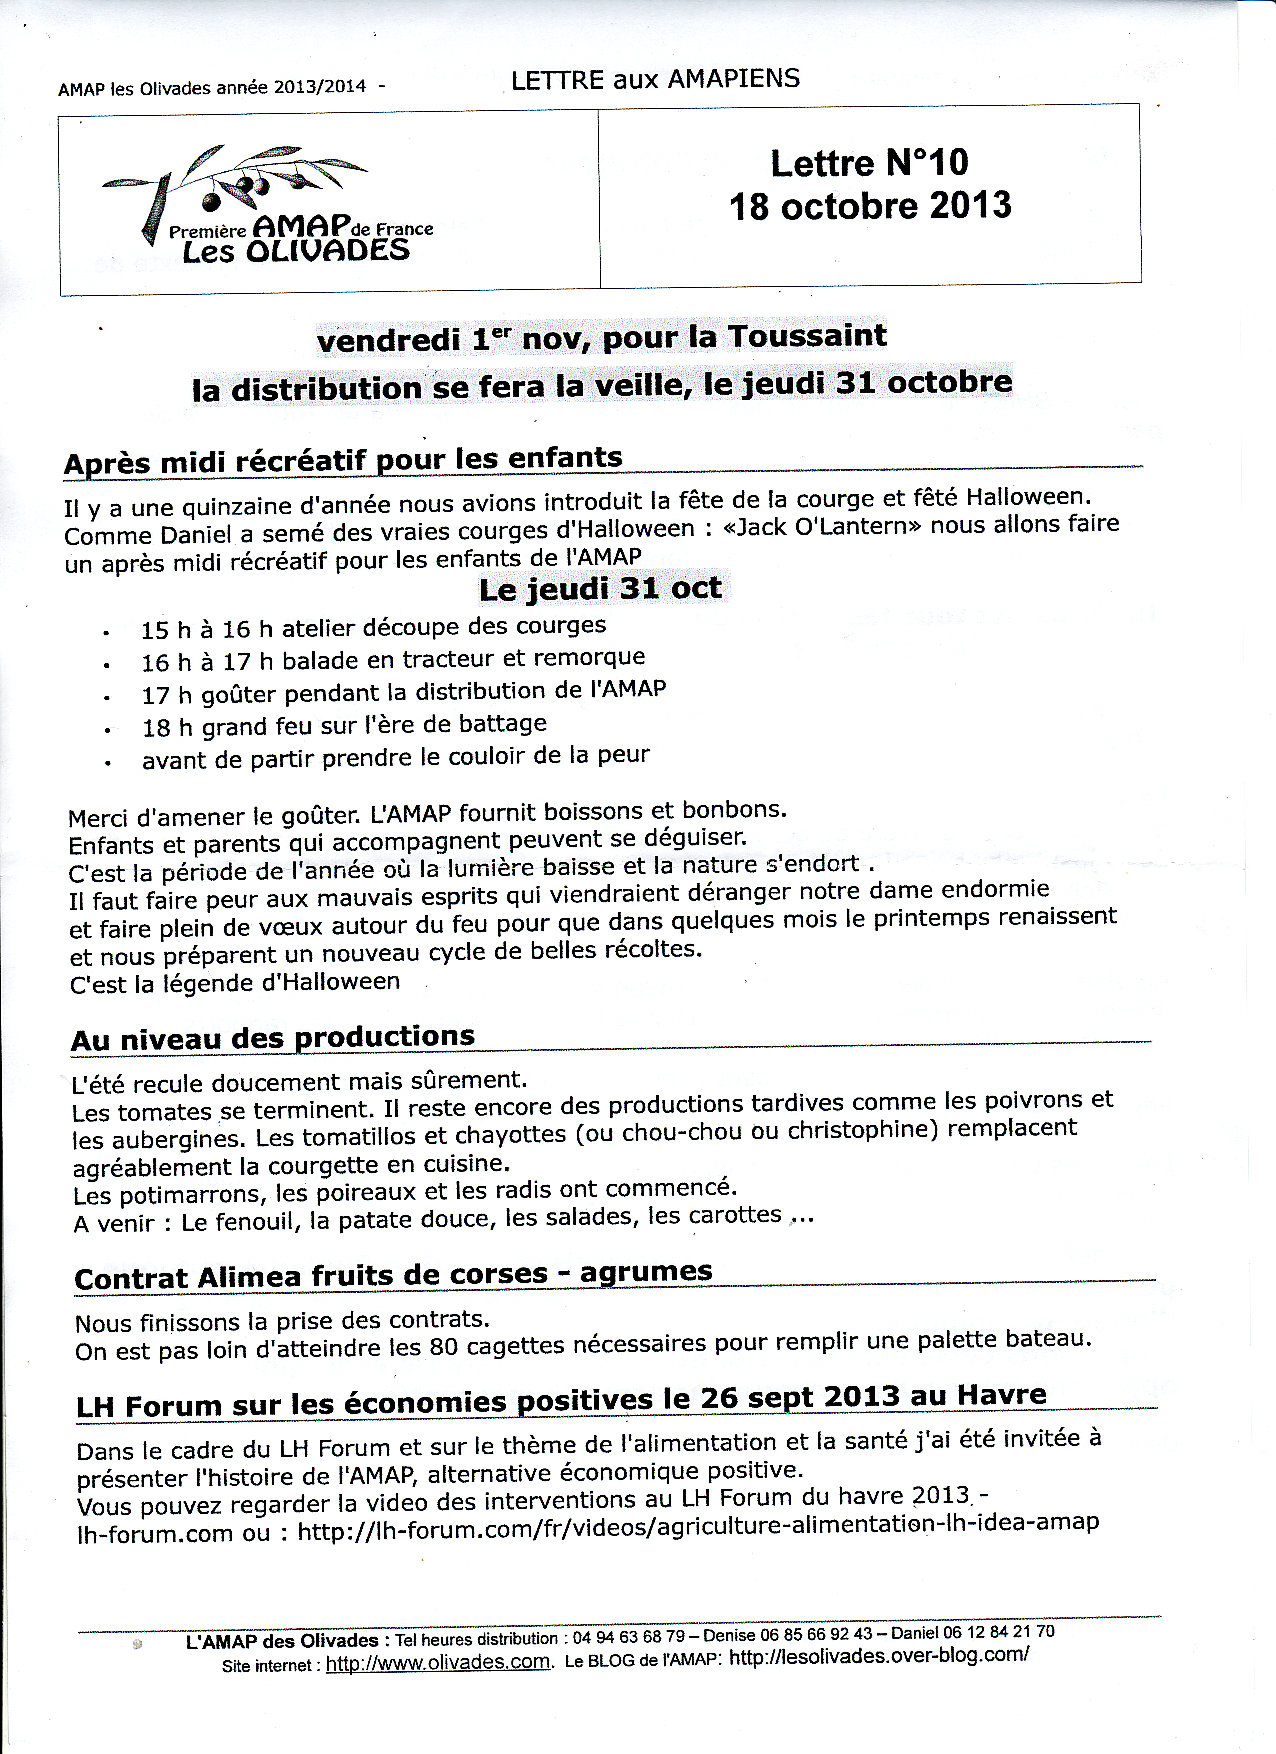 http://file23.free.fr/2012-AMAP-CONTRATS/oct-2013-a.jpg